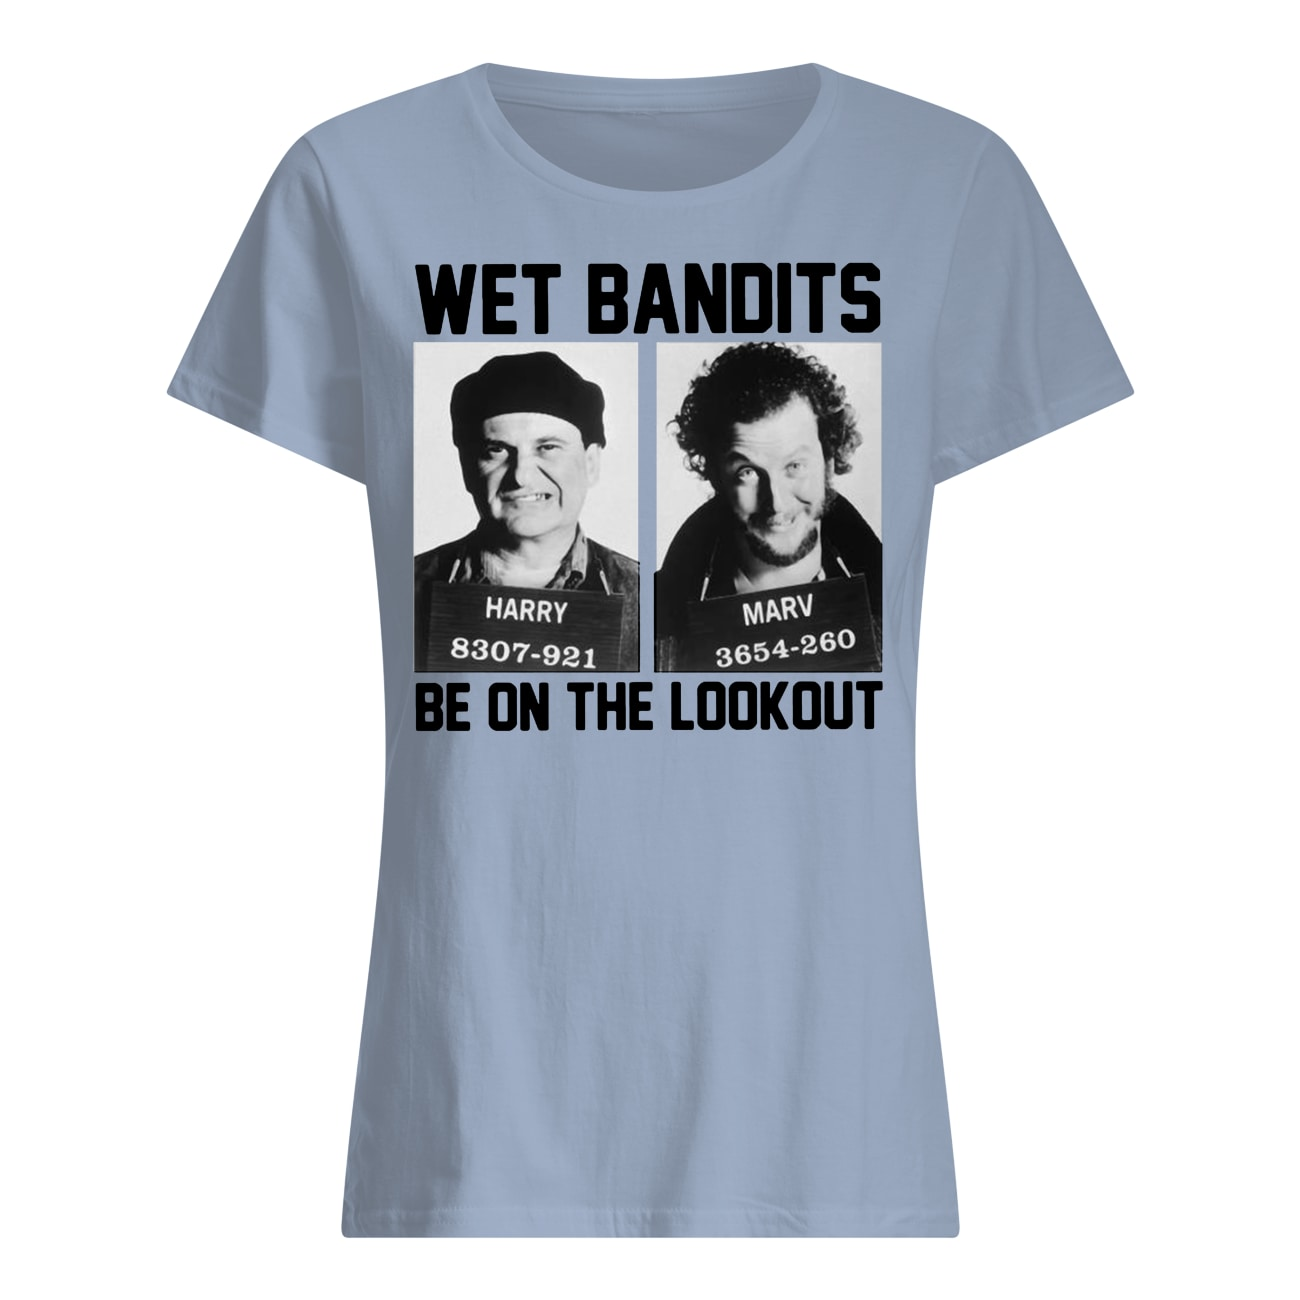 Harry and marv wet bandits be on the lookout home alone womens shirt